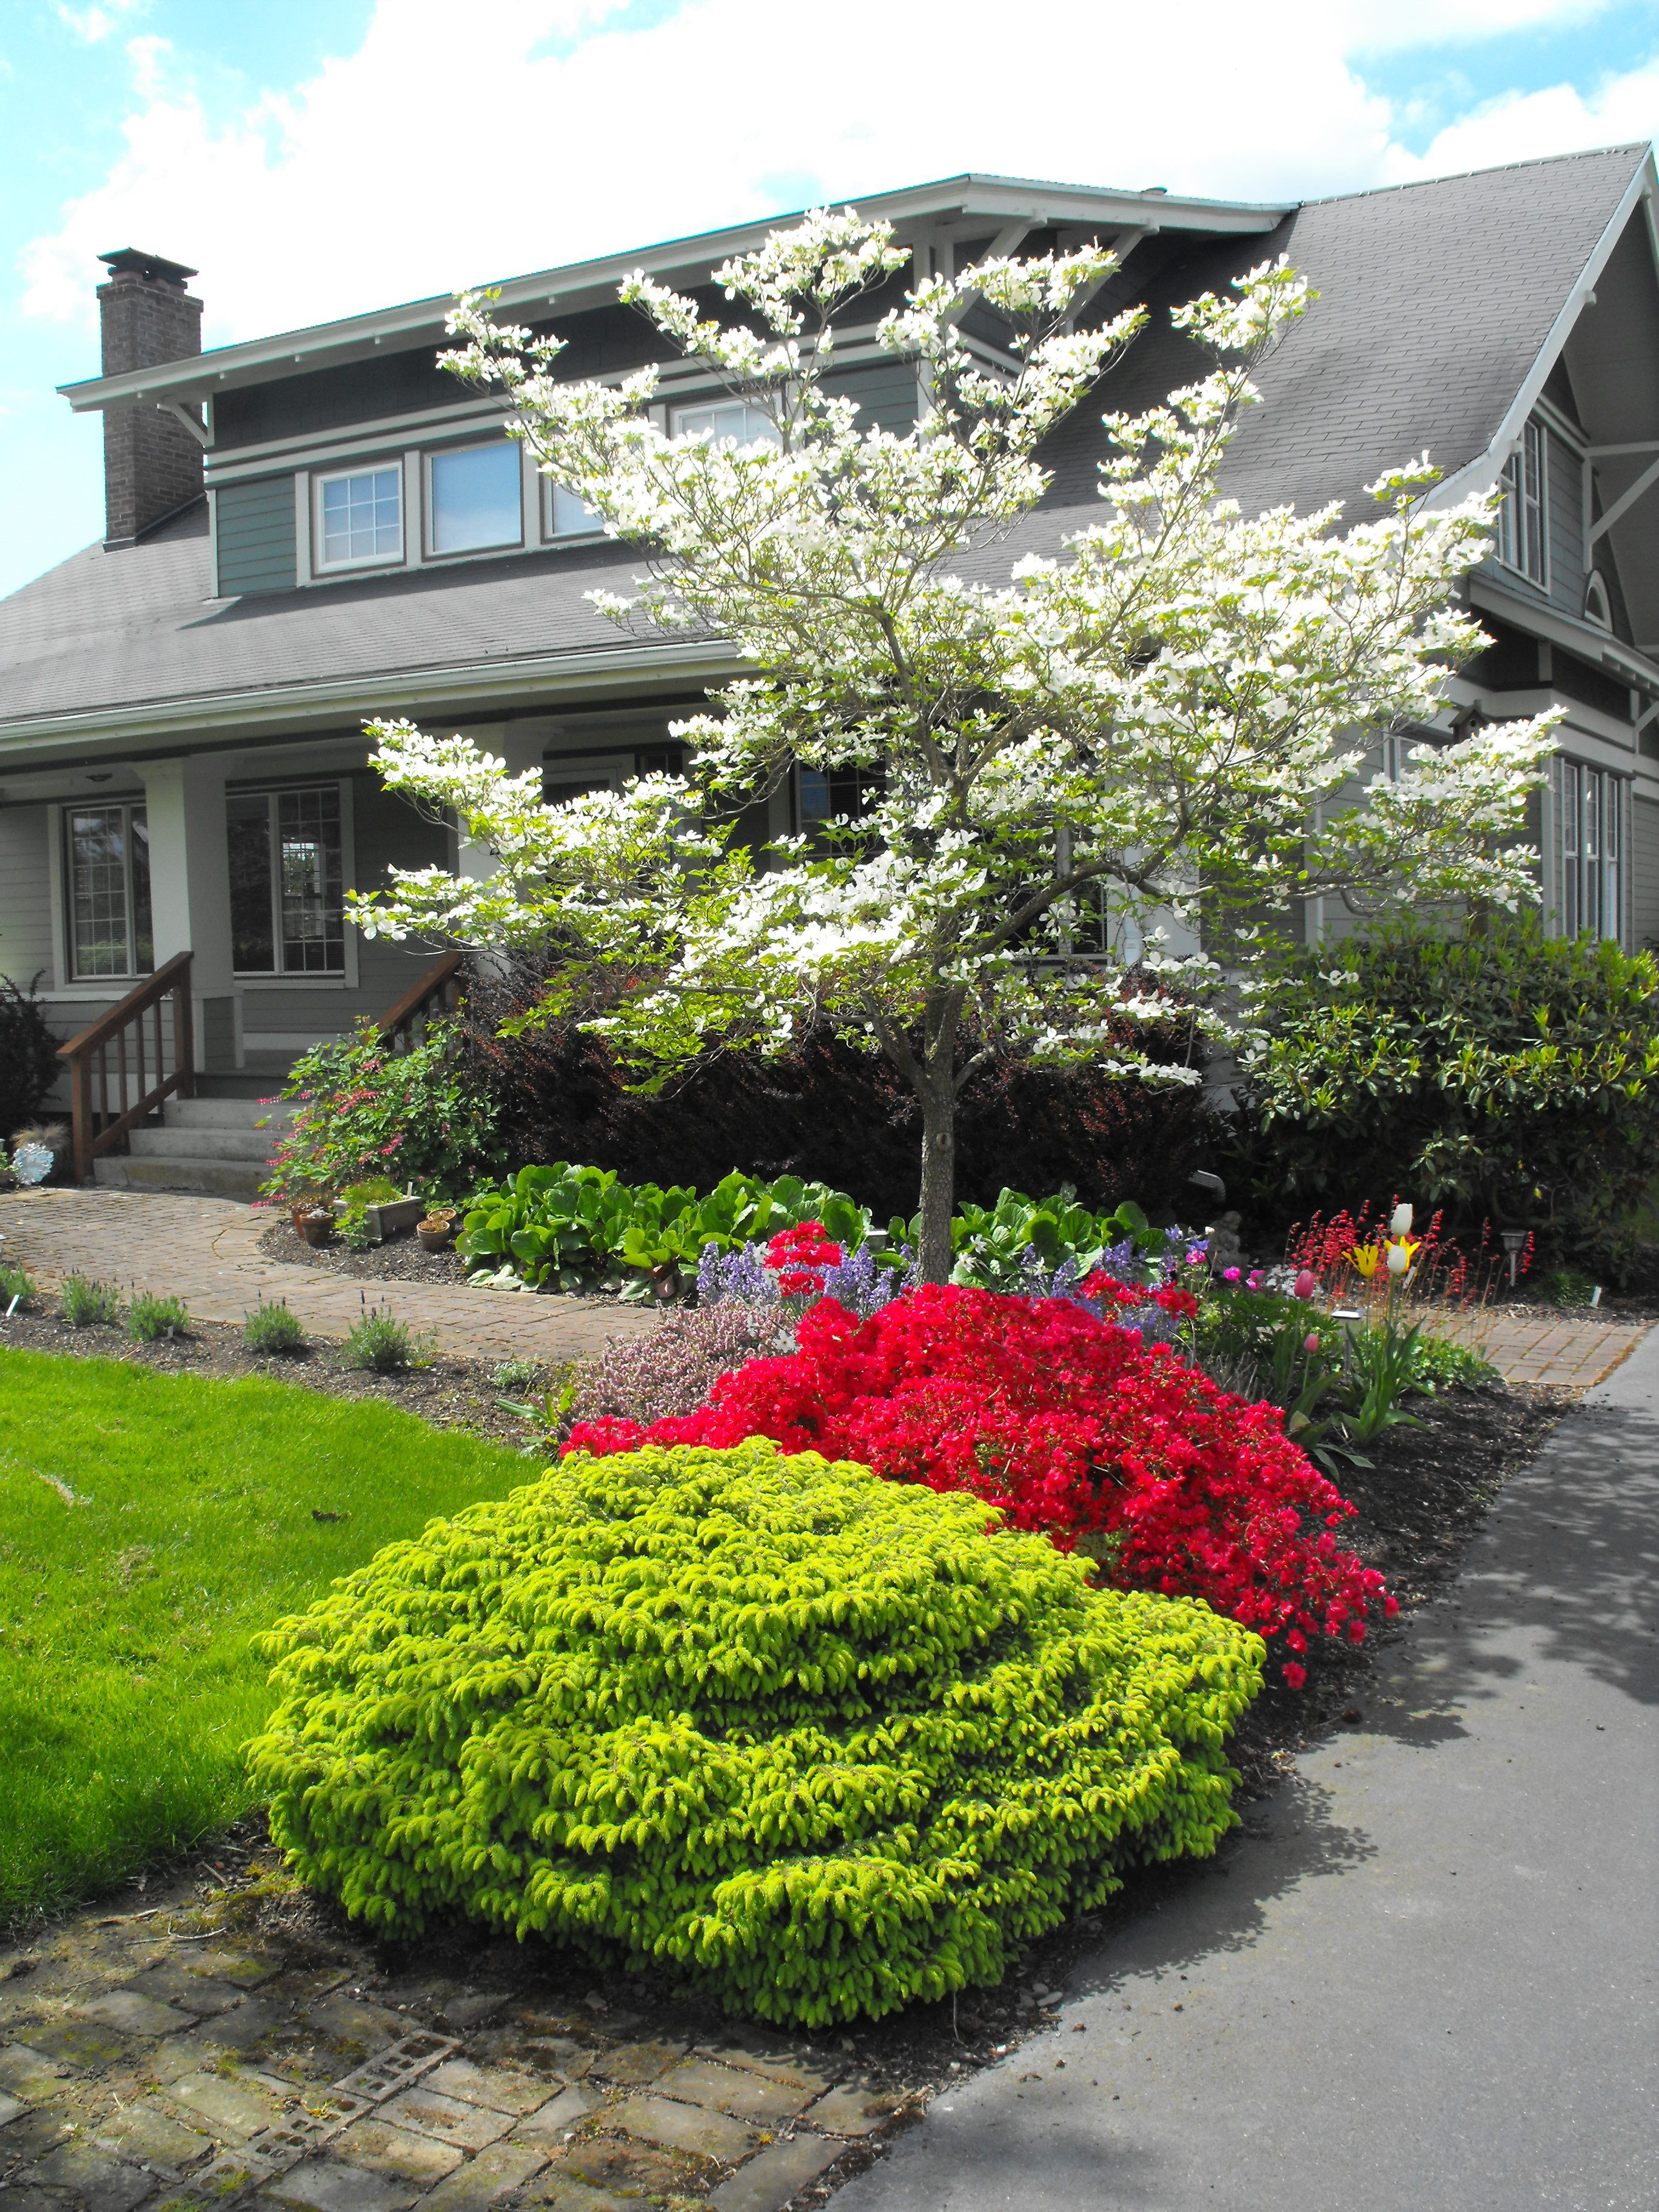 1915 craftsman farmhouse landscaped